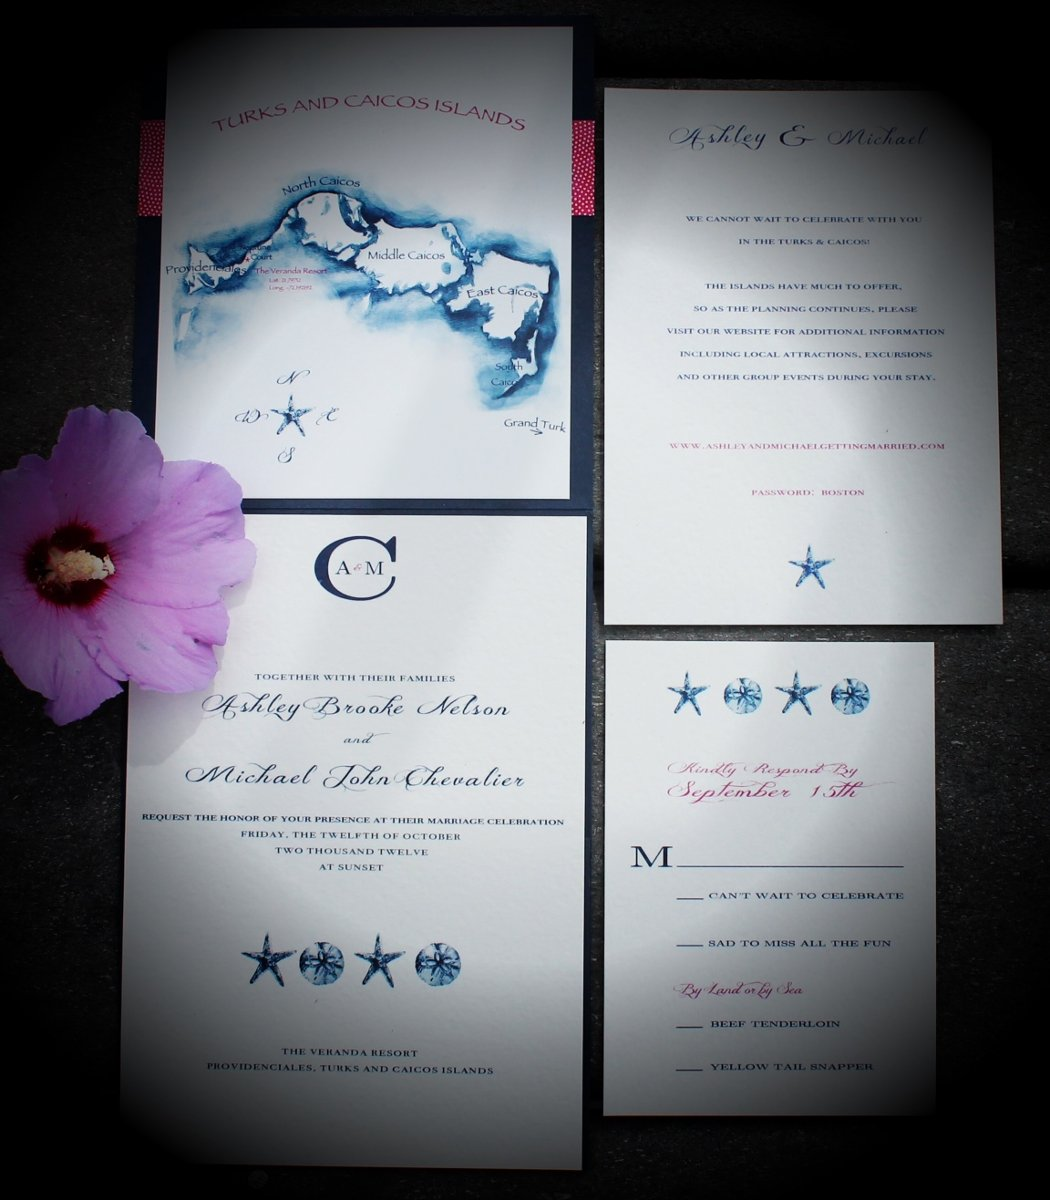 My Blue Sparrow Invitations Reviews Amp Ratings Wedding